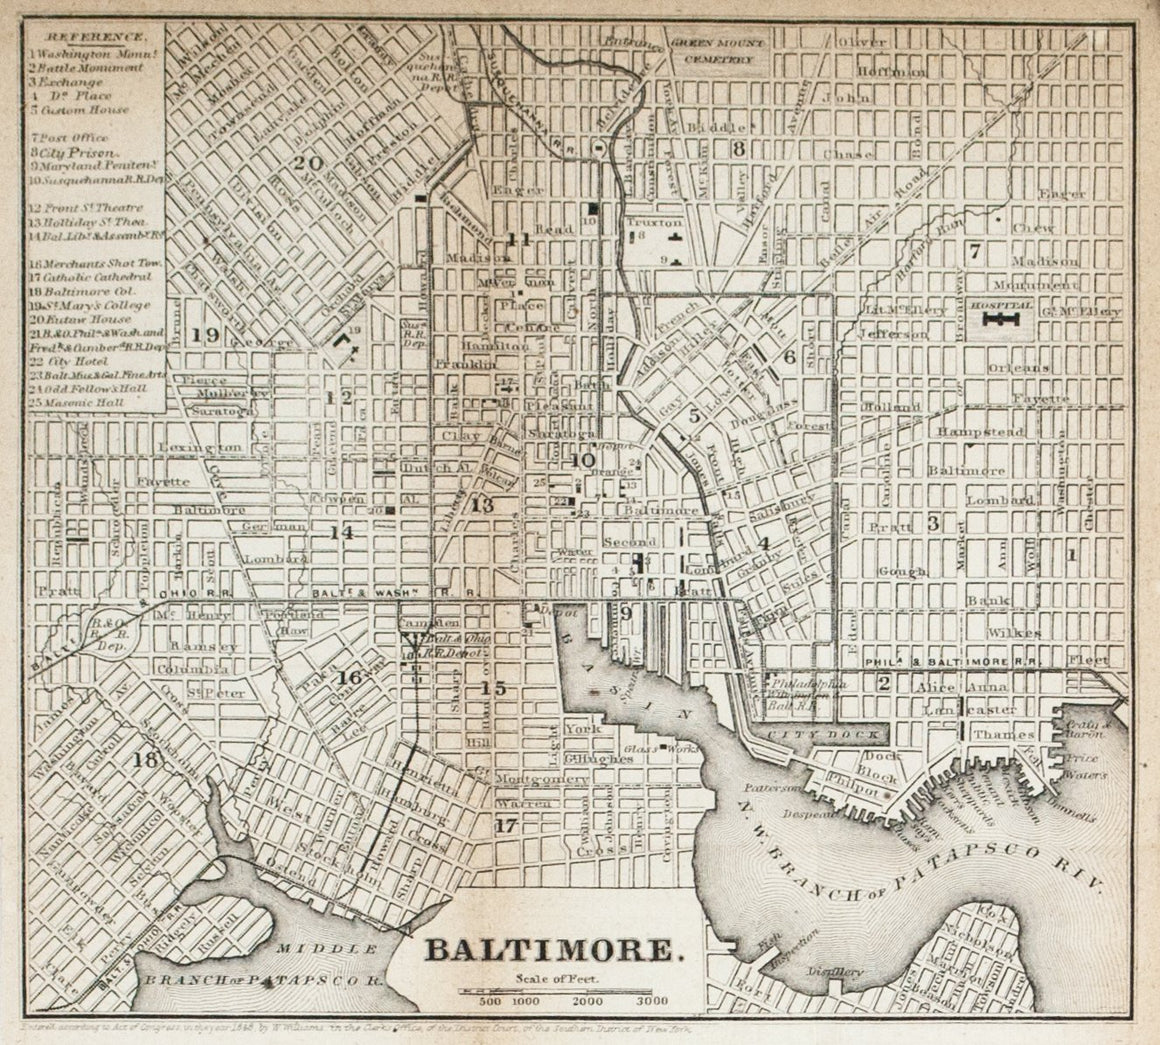 1867 Baltimore - Edward Hall